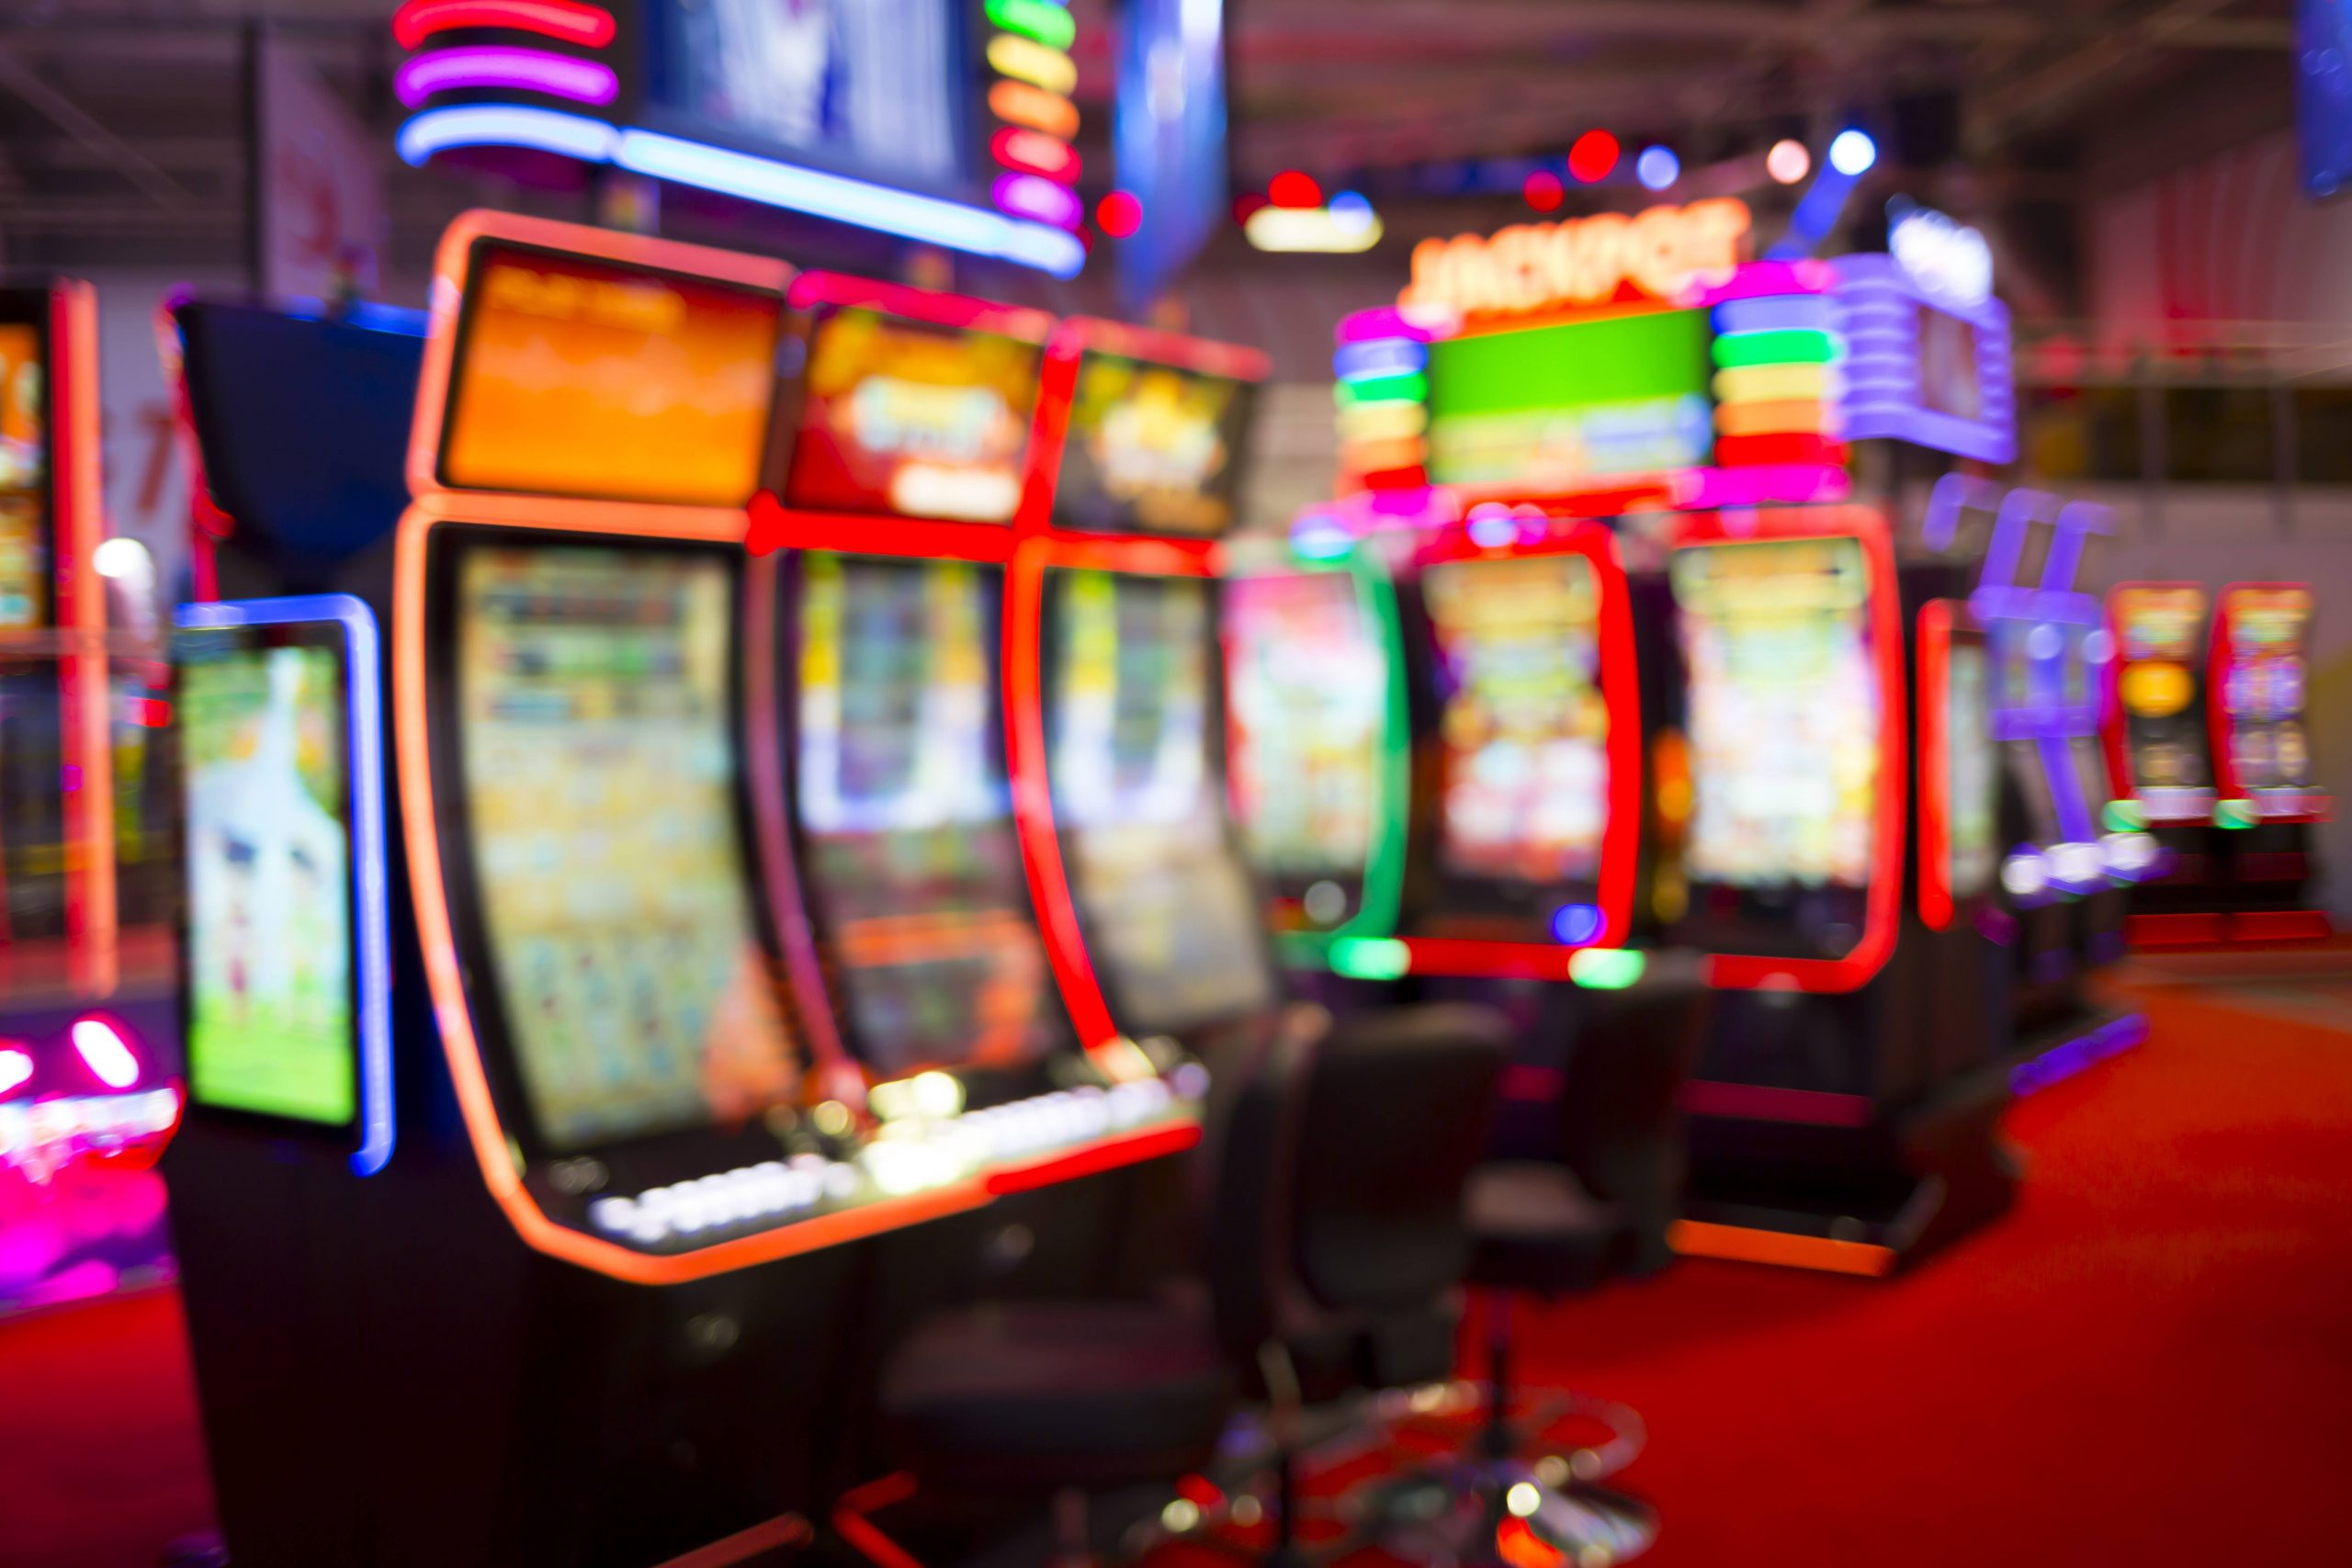 How To Gamble Responsibly (And Stop When You Need To) - Casino.org Blog